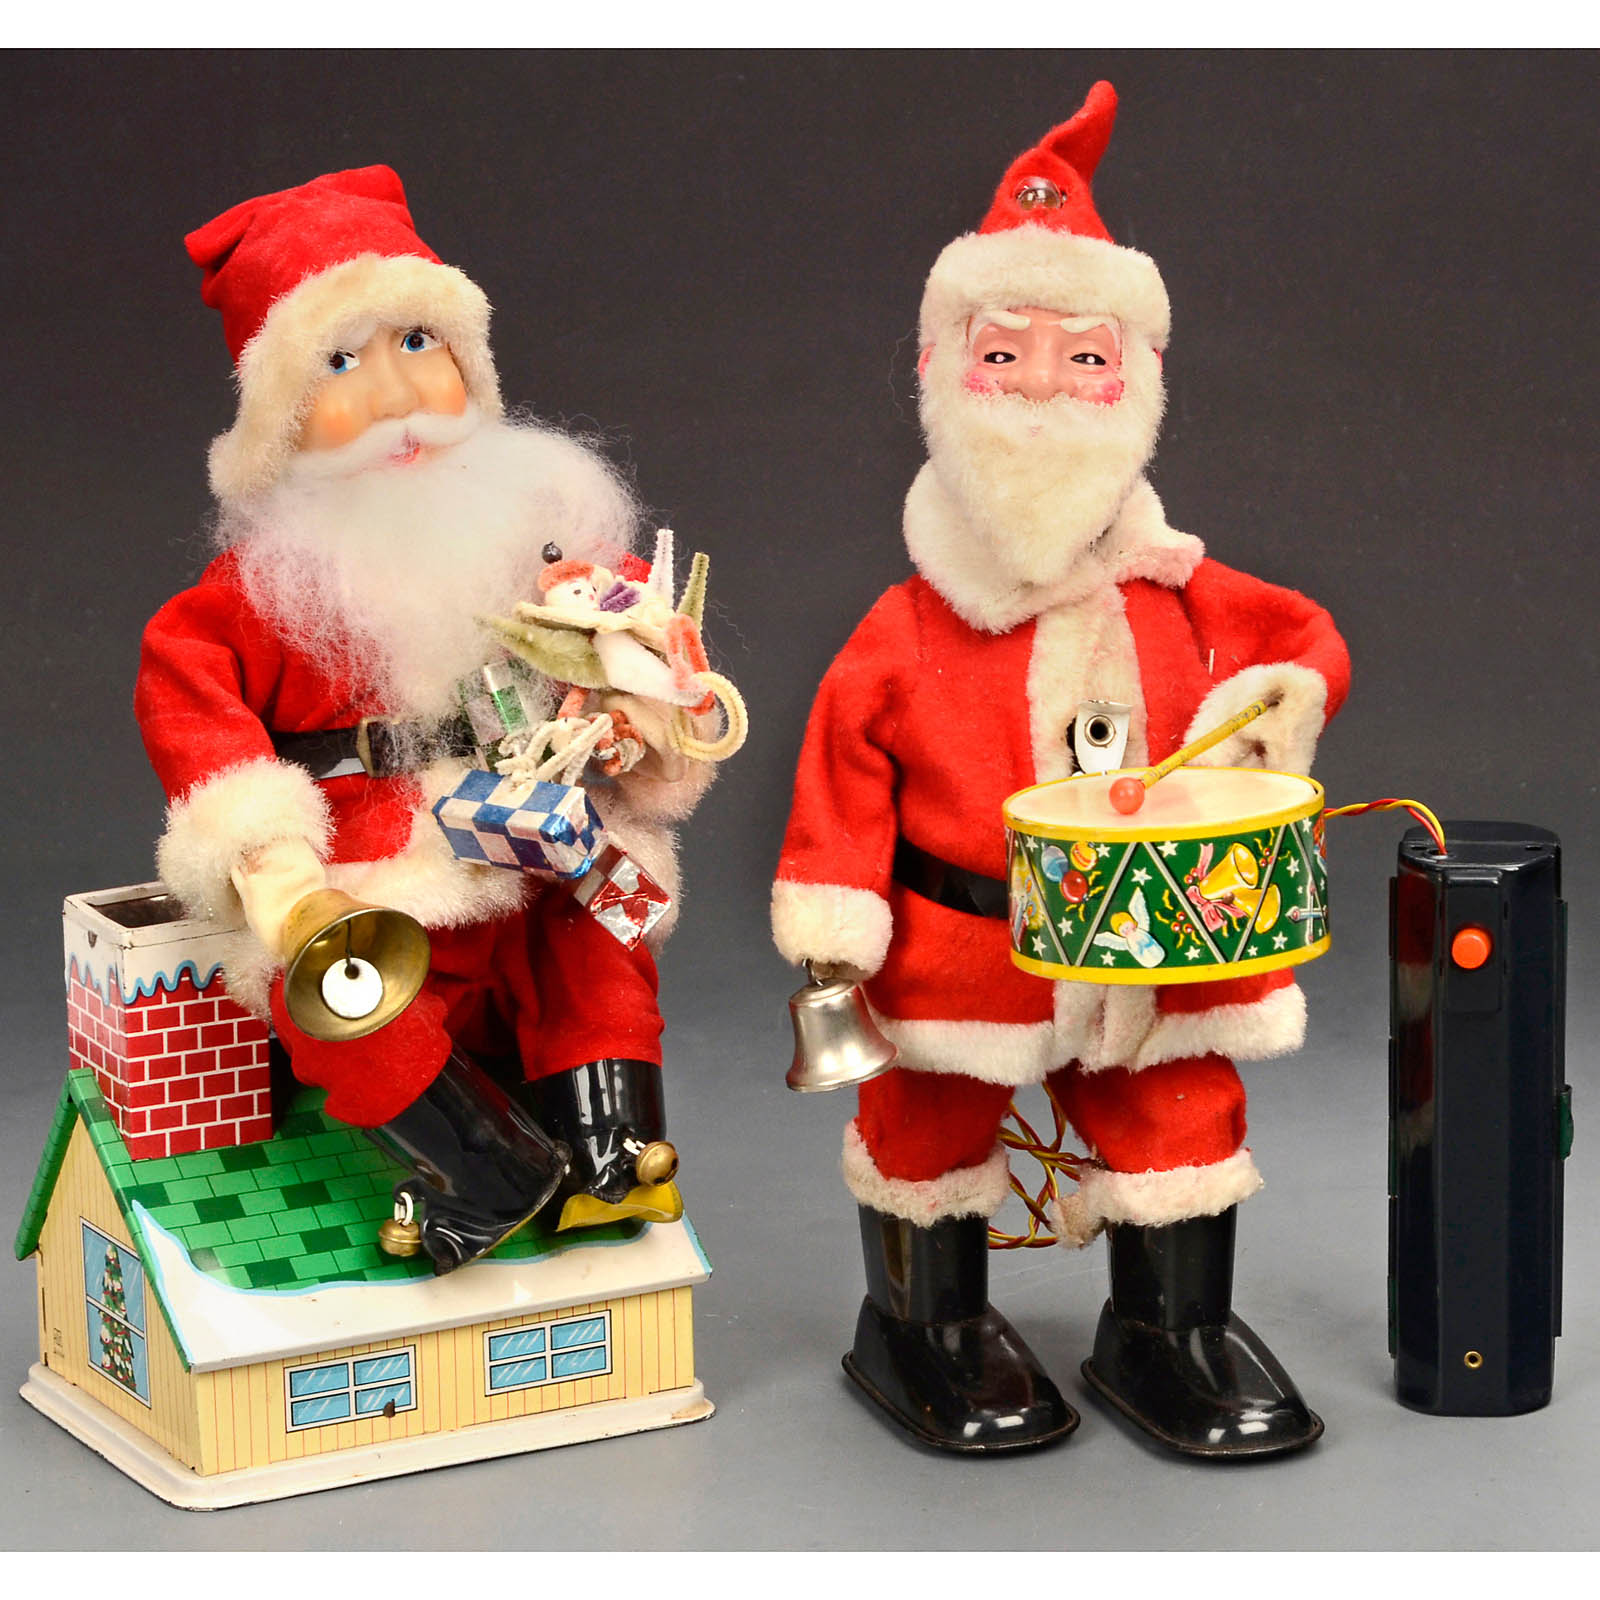 2 Battery-Operated Santas, c. 1960 Japanese Christmas tin toys. 1 ...